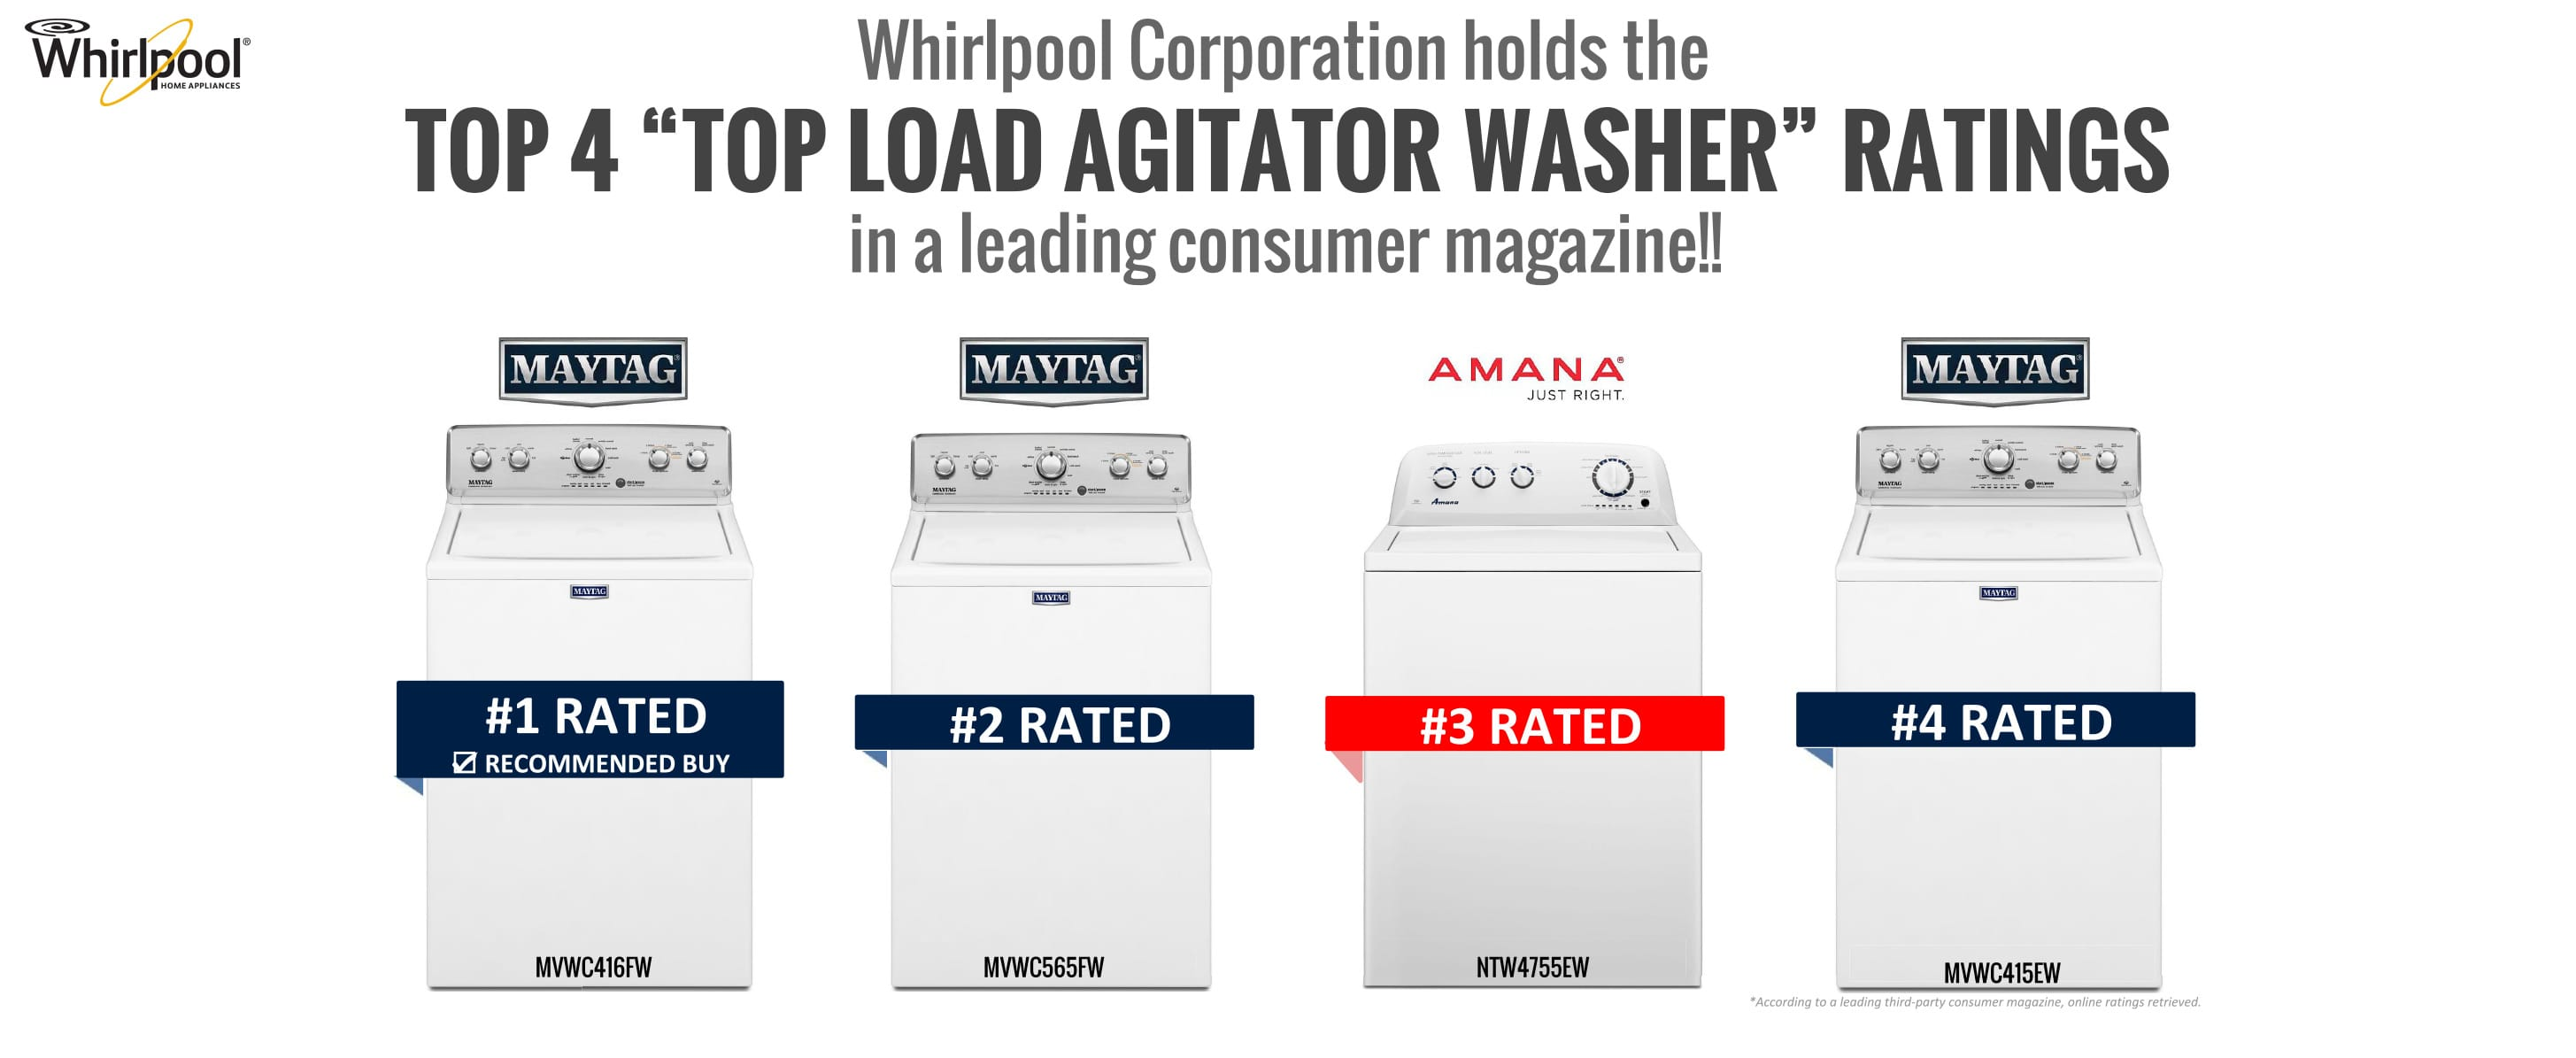 Whirpool Washer Ratings